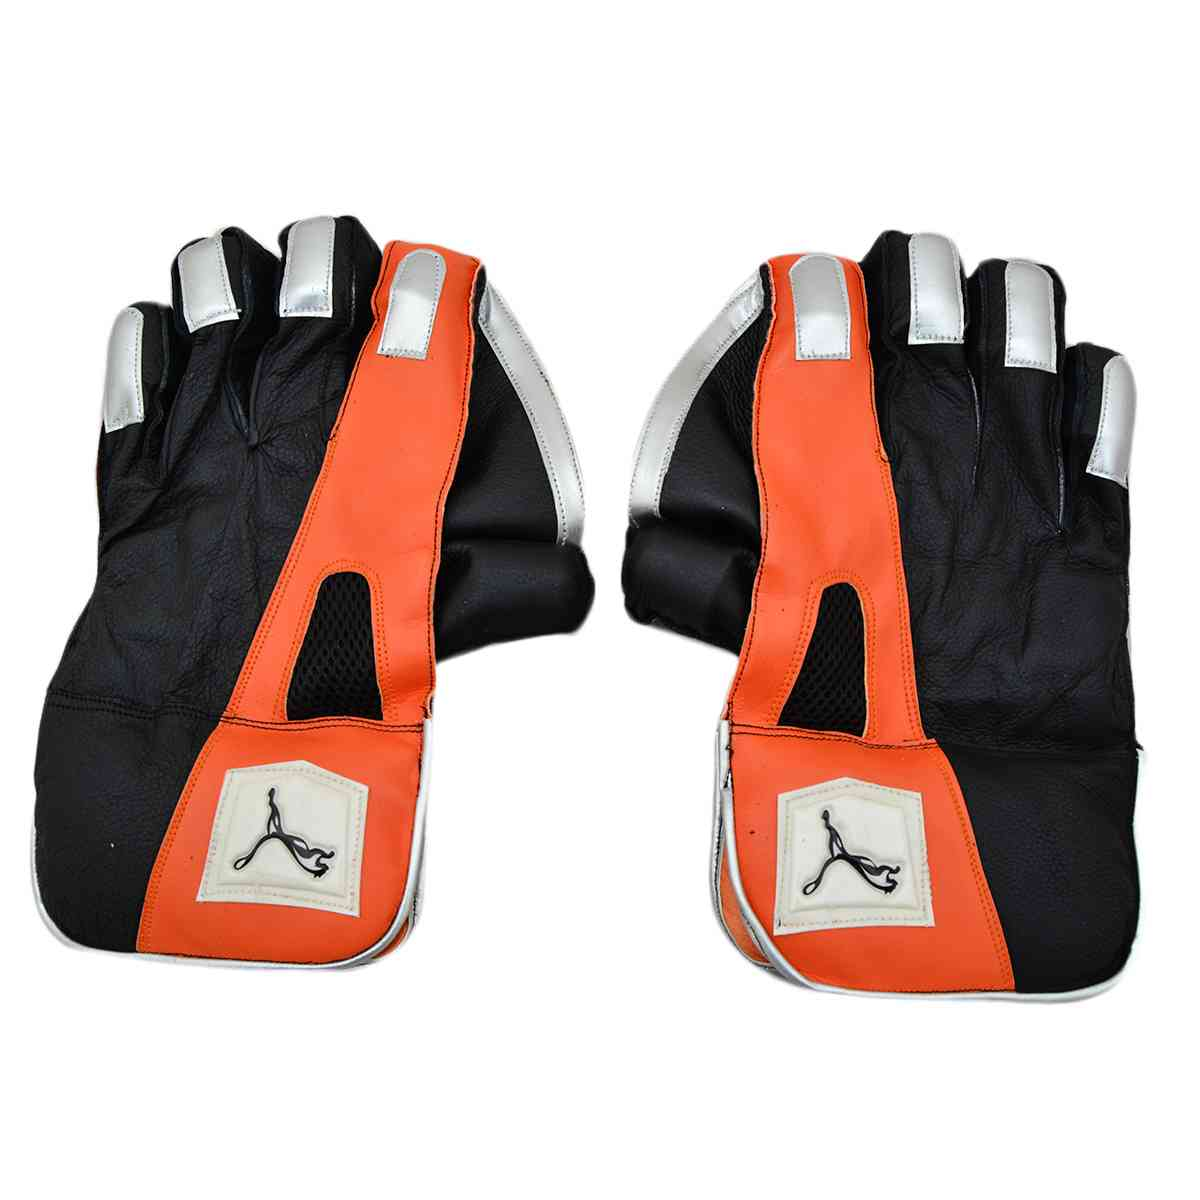 2 Pcs Puma Football Goal Keeper Gloves - Black